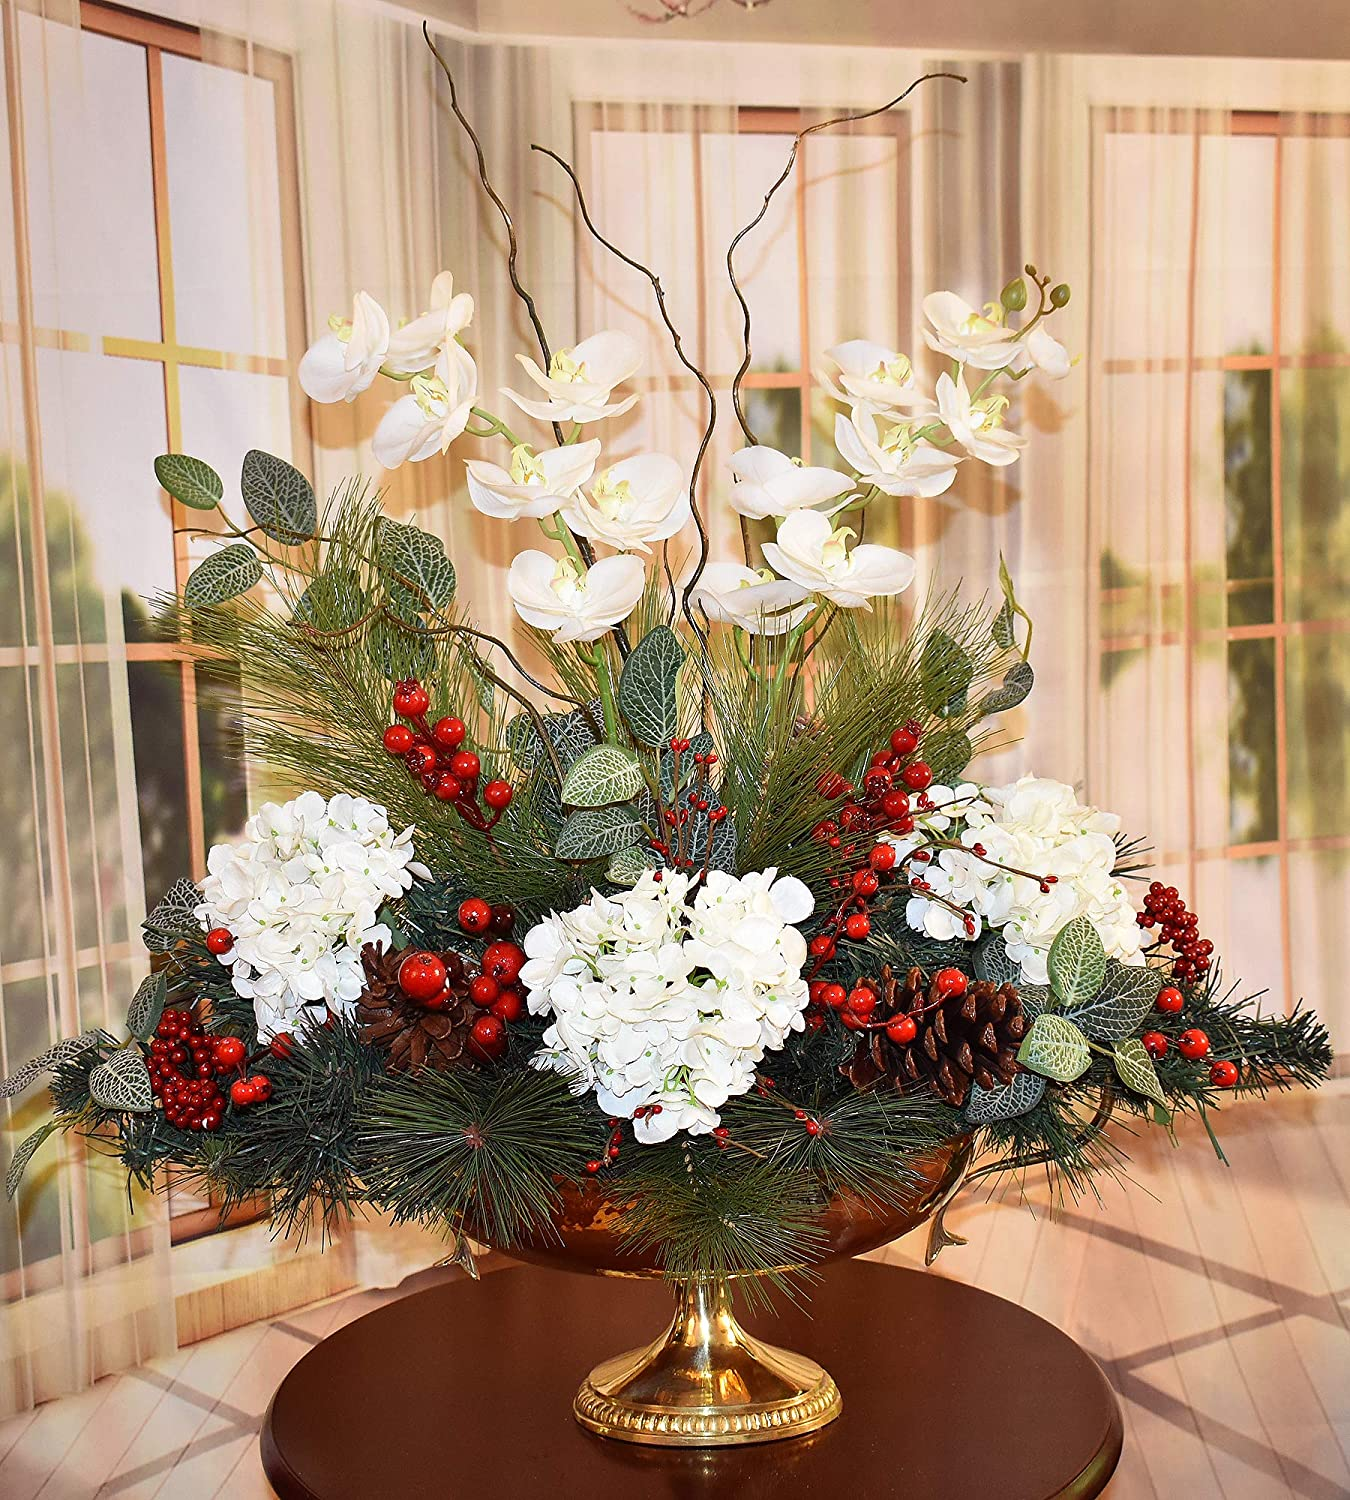 Grande Orchid and Hydrangea Winter Floral in Brass